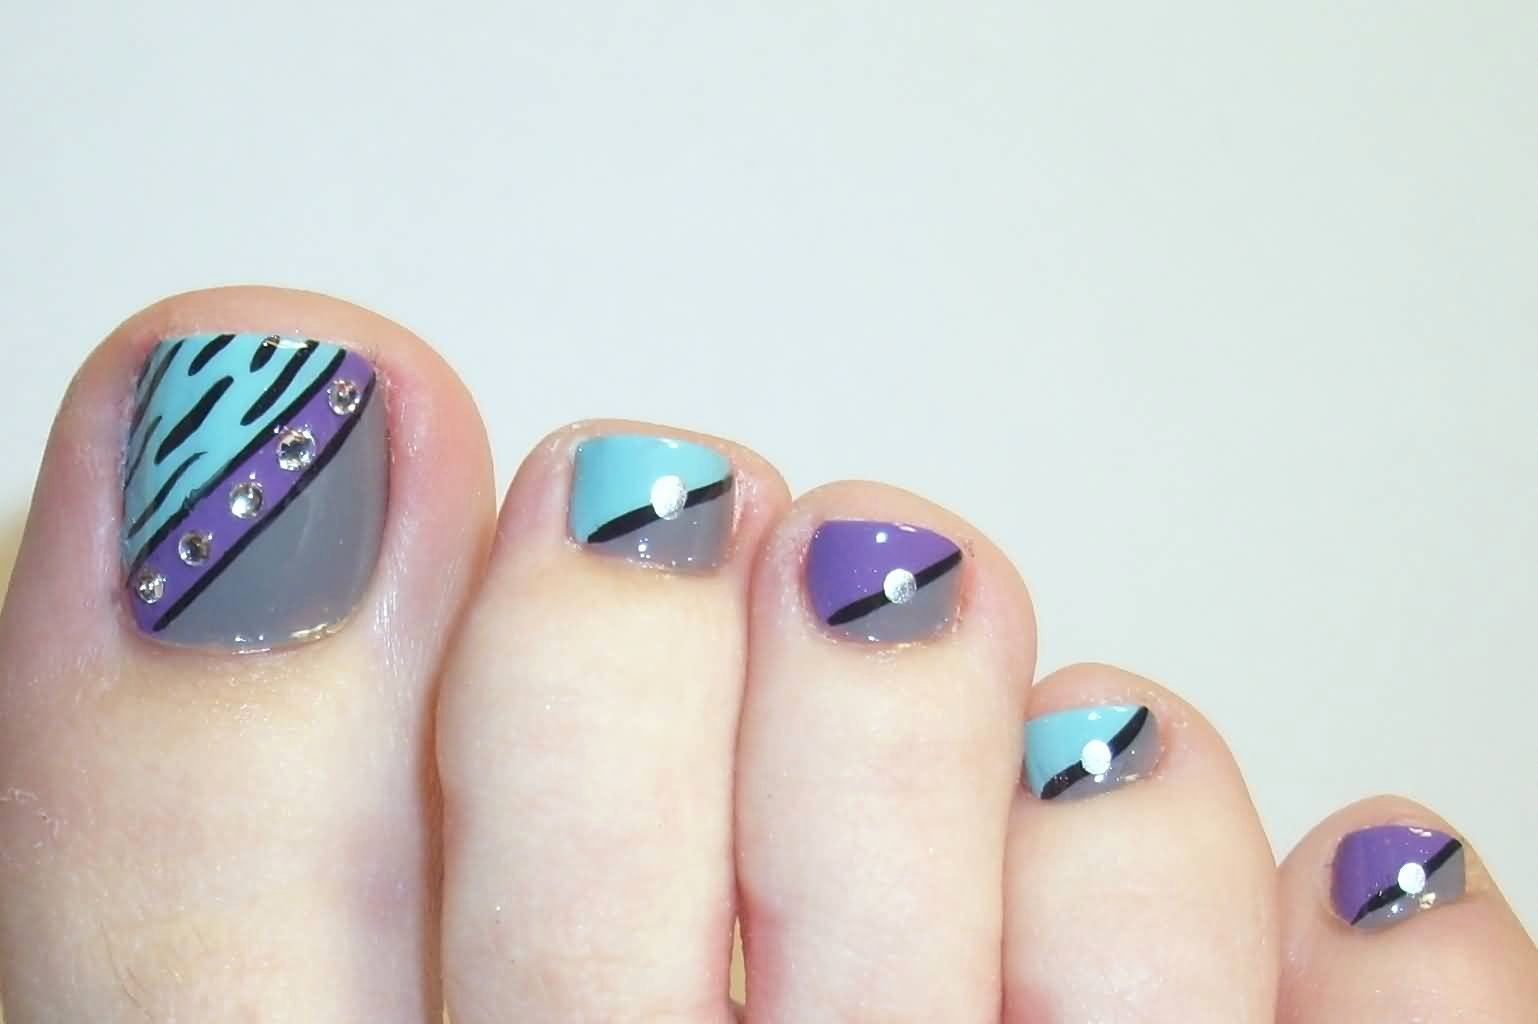 Toe Nail Polish Designs Unique 35 Stylish Purple Nail Art Designs for toe Nails